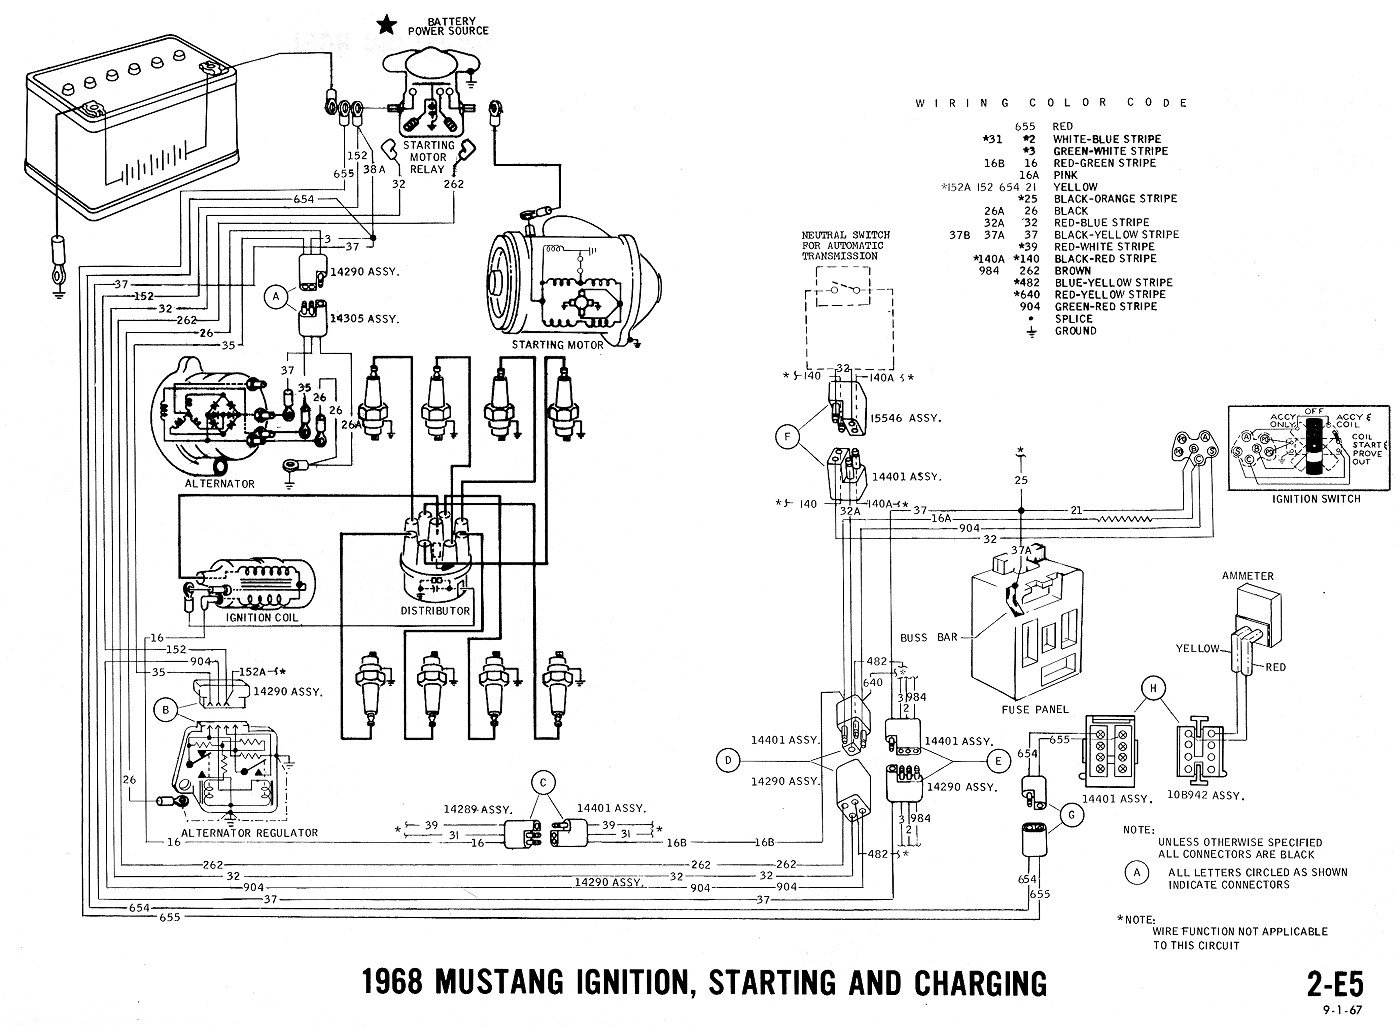 wiring new starter single wire alternator solenoid 73 coupe click image for larger version 1968 ford mustang igntion starting